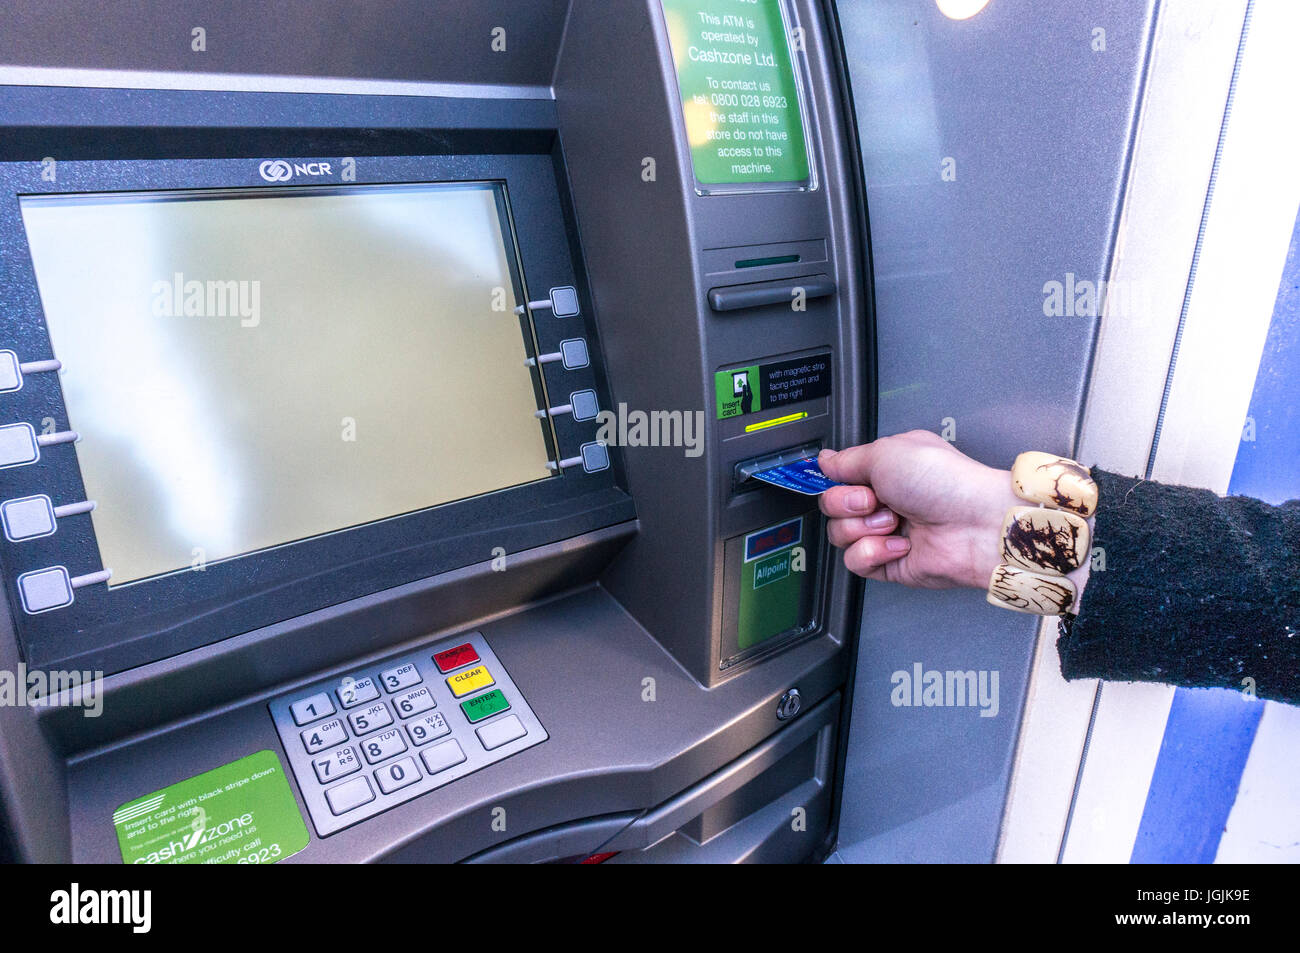 A woman's hand, bearing a large bracelet, inserting a credit or debit card into a cashpoint ATM machine, to - Stock Image